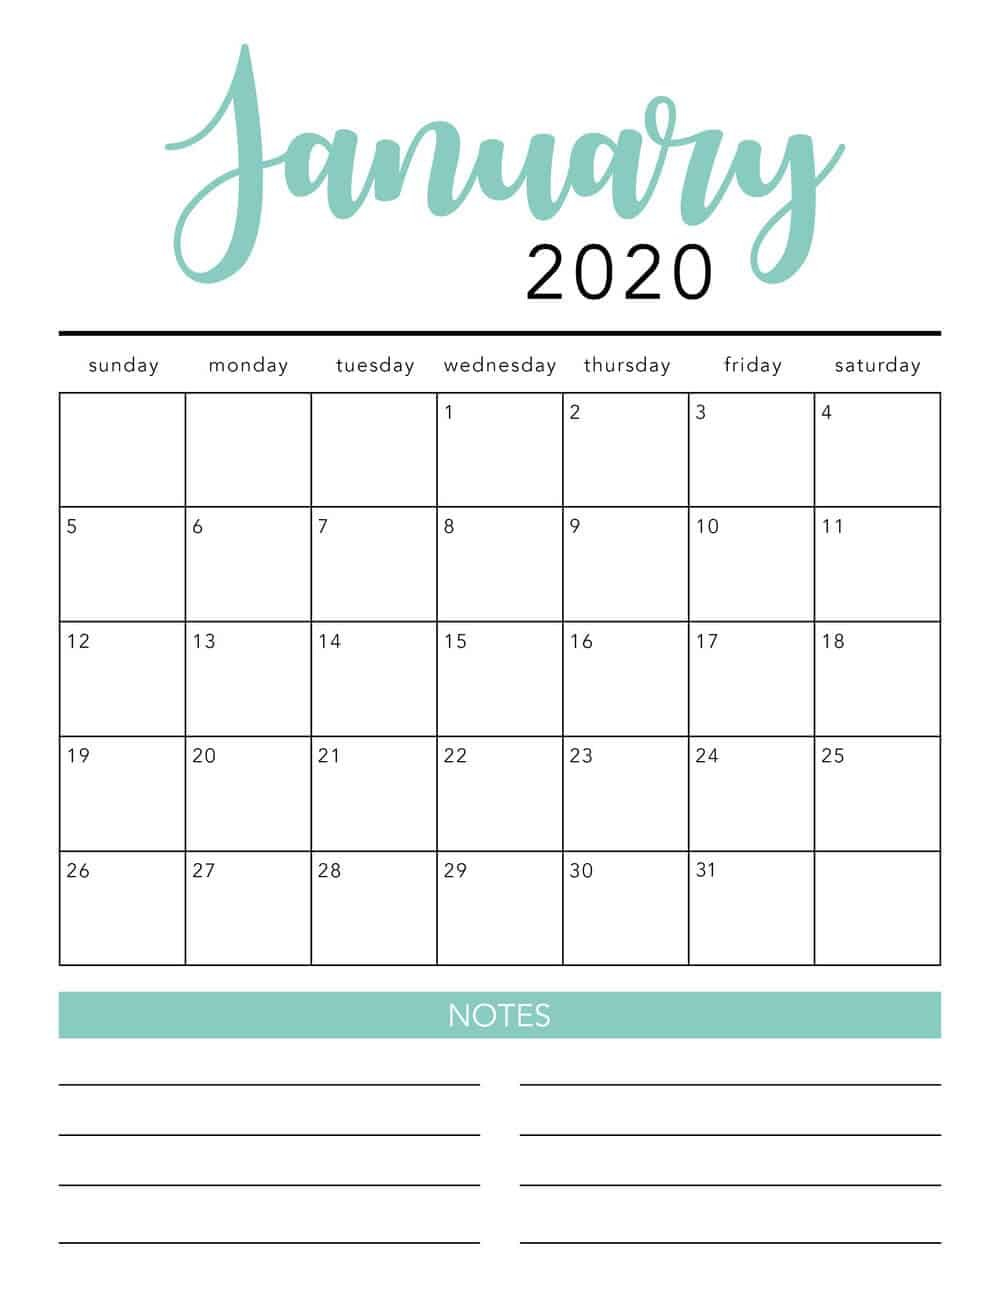 Free 2020 Printable Calendar Template (2 Colors!) – I 8X5 Monthly Calendar Print Outs